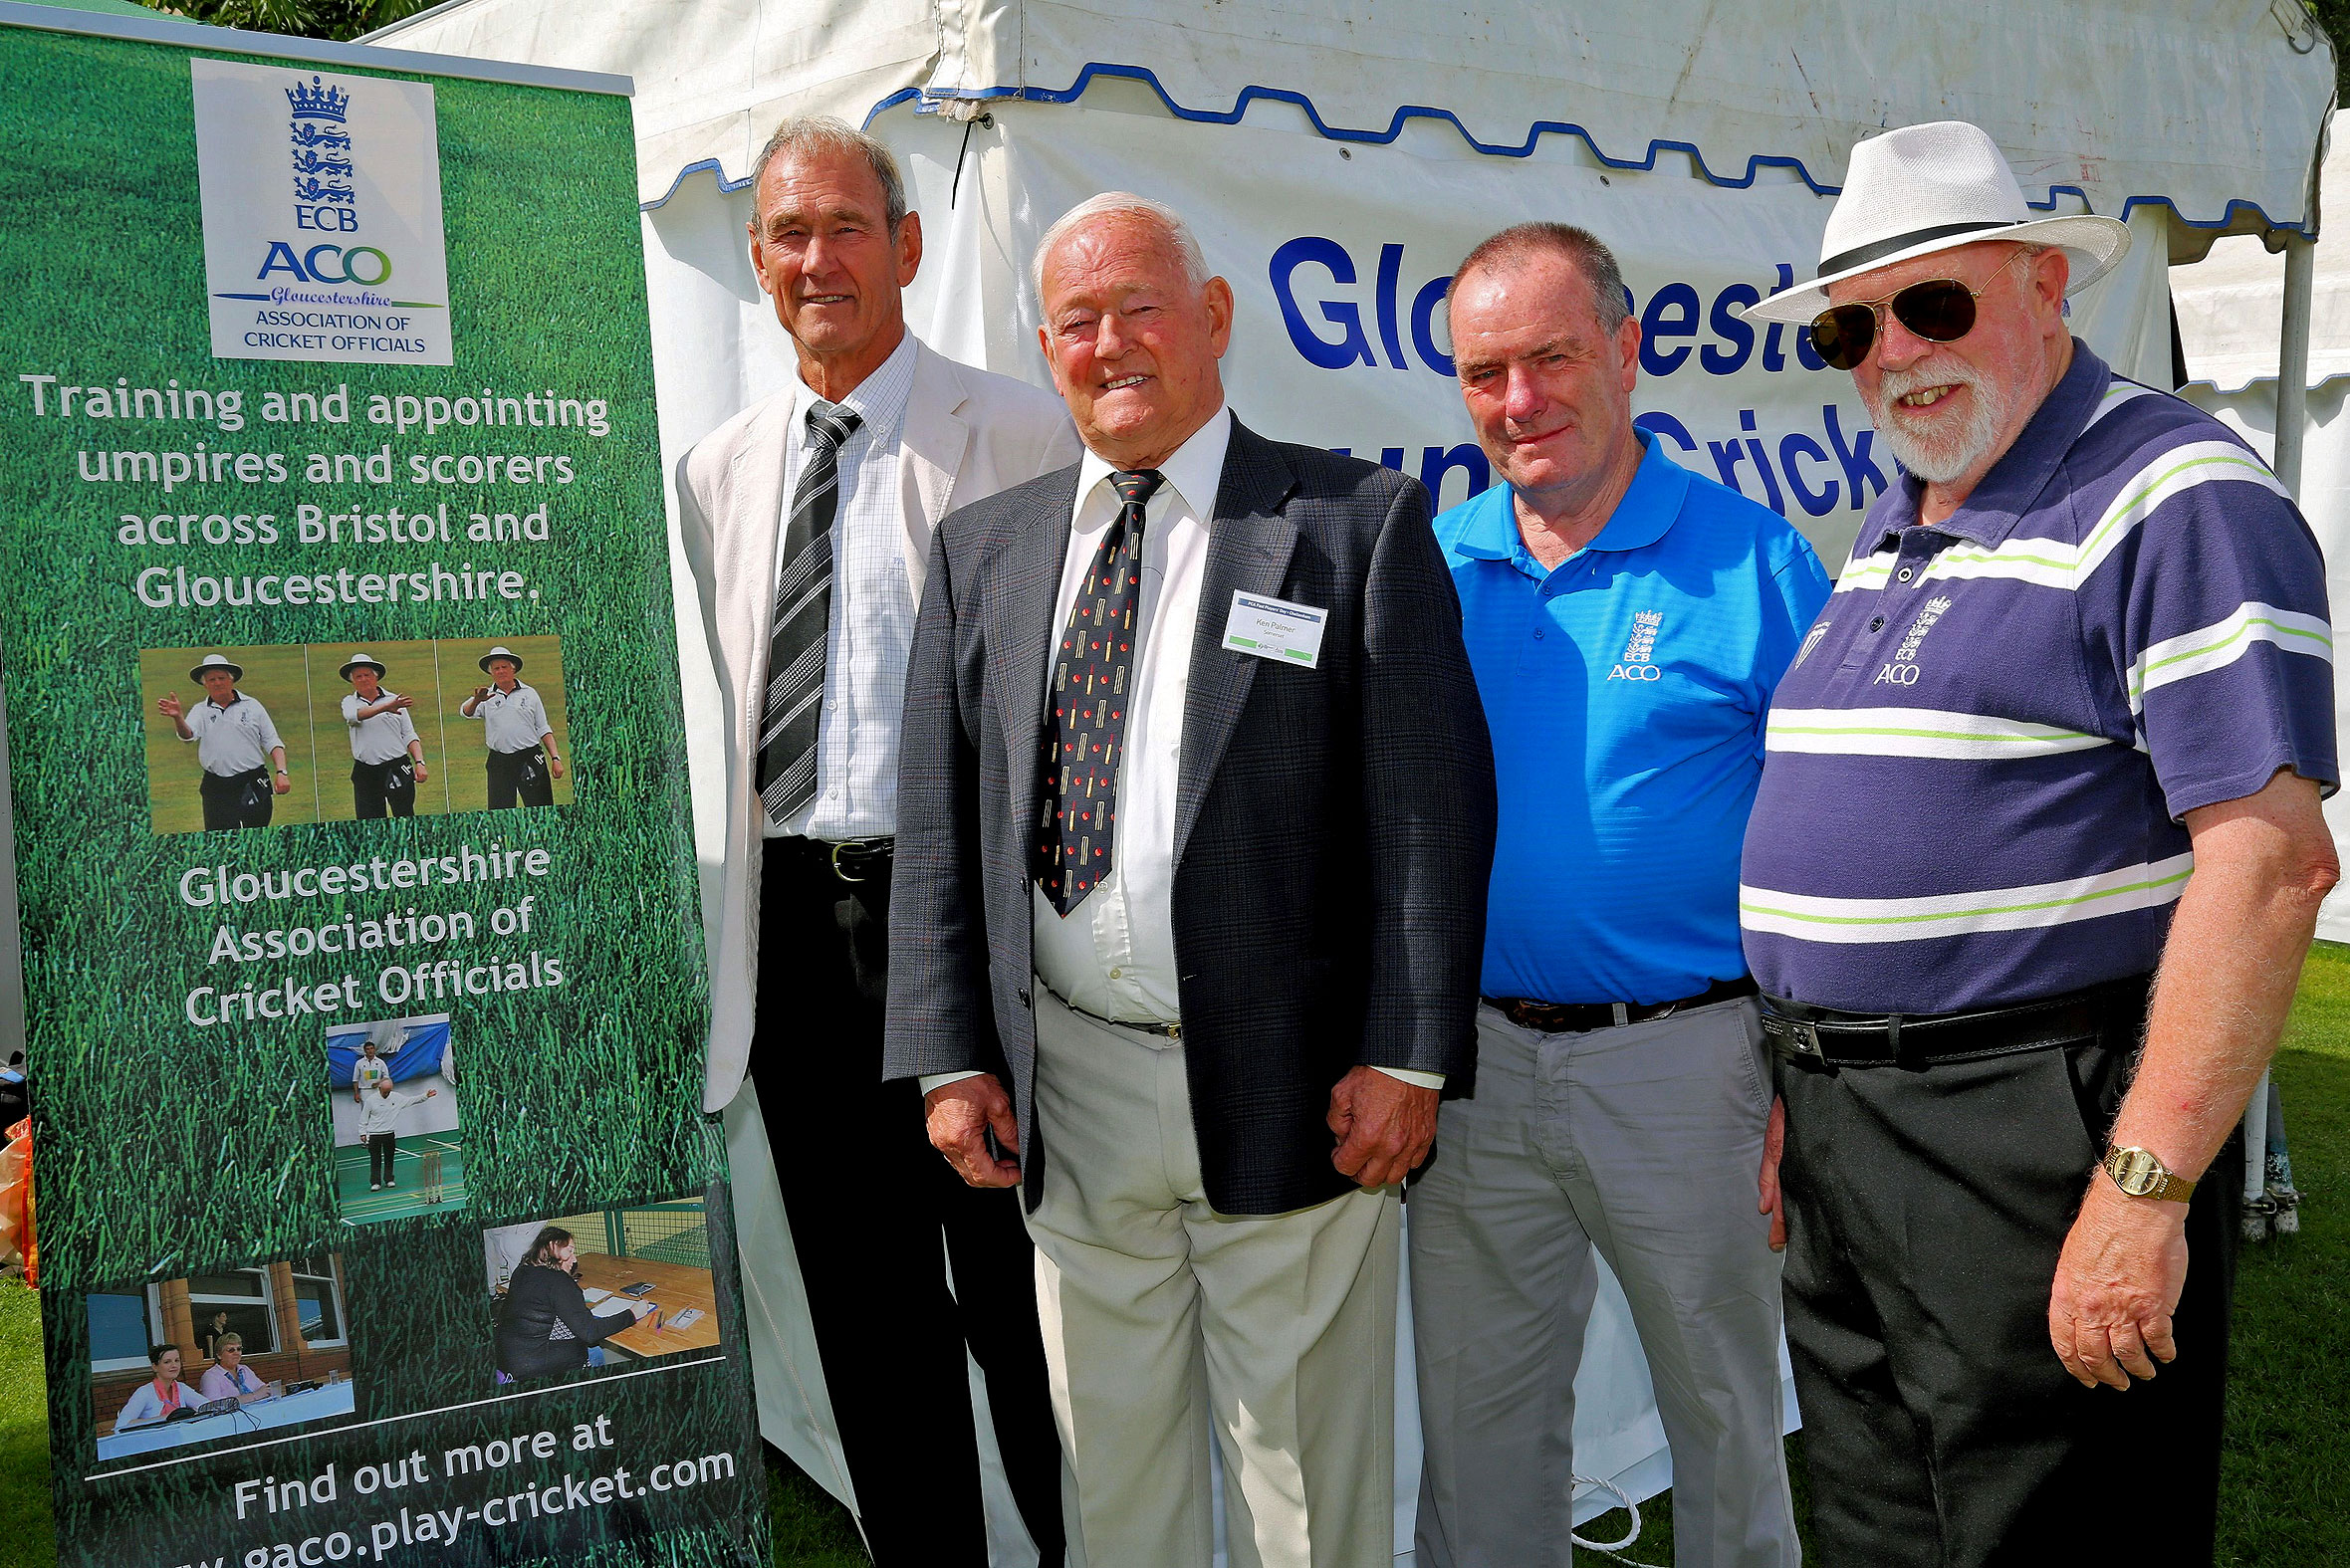 Former international umpires help Glos recruitment drive